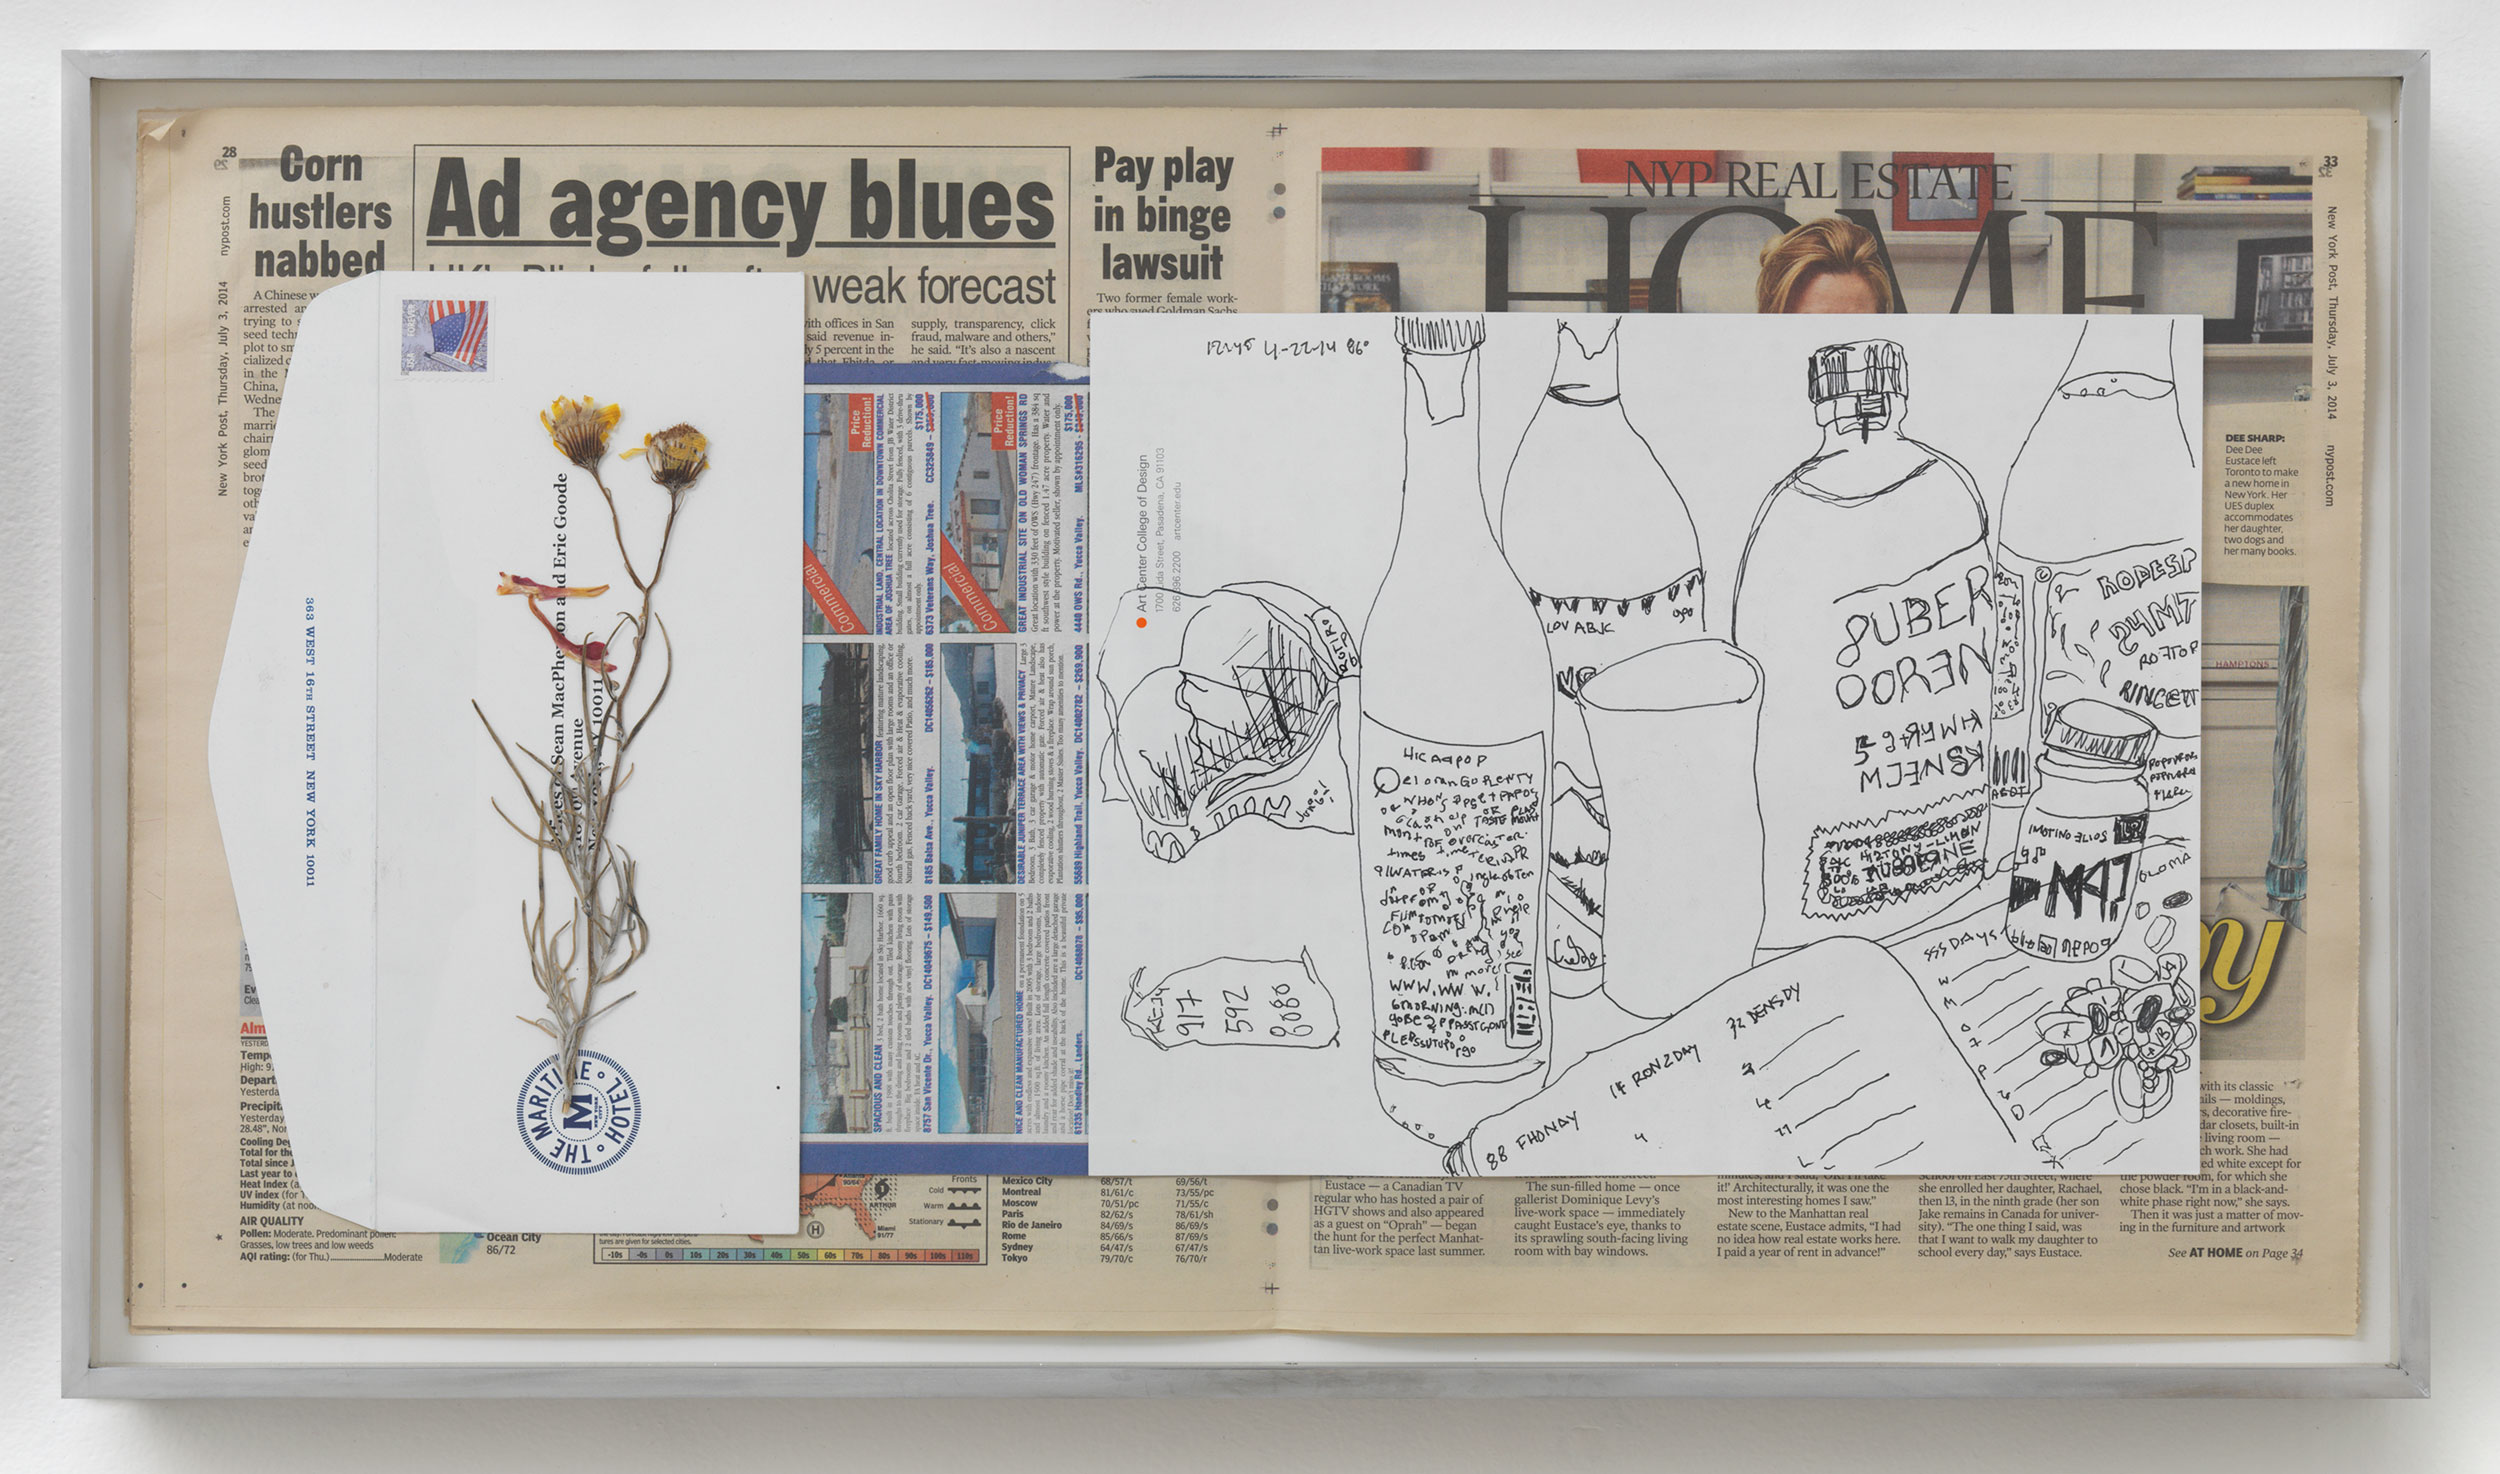 Corn Hustlers Nabbed; Ad Agency Blues: Pay Play in binge lawsuit, 86º, 2:45pm, 22-4-14    2014   Ink on paper, envelope, dried flower, newspaper  12 x 22 inches   Drawings, 2014–